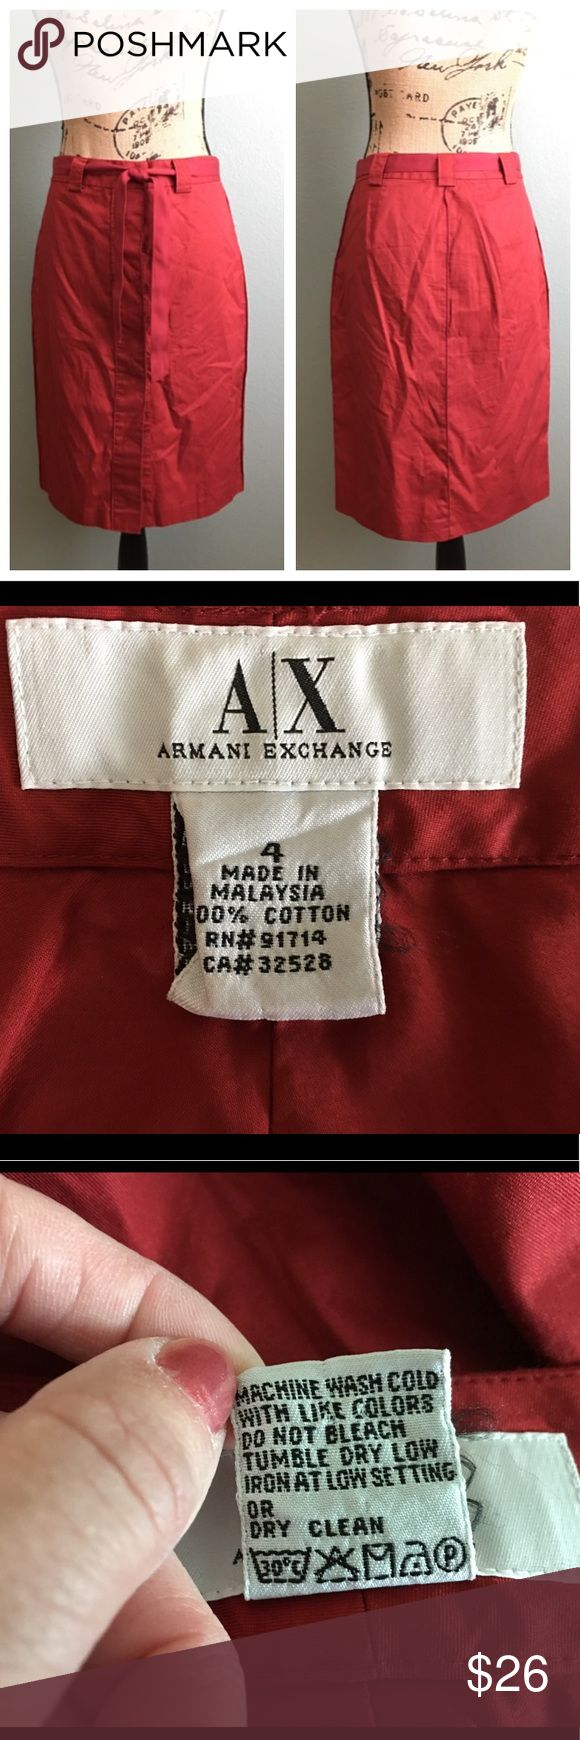 "A/X Armani Exchange size 4 red buttoned skirt! A/X Armani Exchange size 4 red buttoned skirt! Great condition. Matching tie belt is included. Buttons up the front. Fabric is lightweight. Skirt is unlined. Hens have a raised rough look/texture. Approximate flat measurements: waist 15"", hips 18.5"", length23"". I don't trade. Reasonable offers welcome. Thanks! 😊 A/X Armani Exchange Skirts"